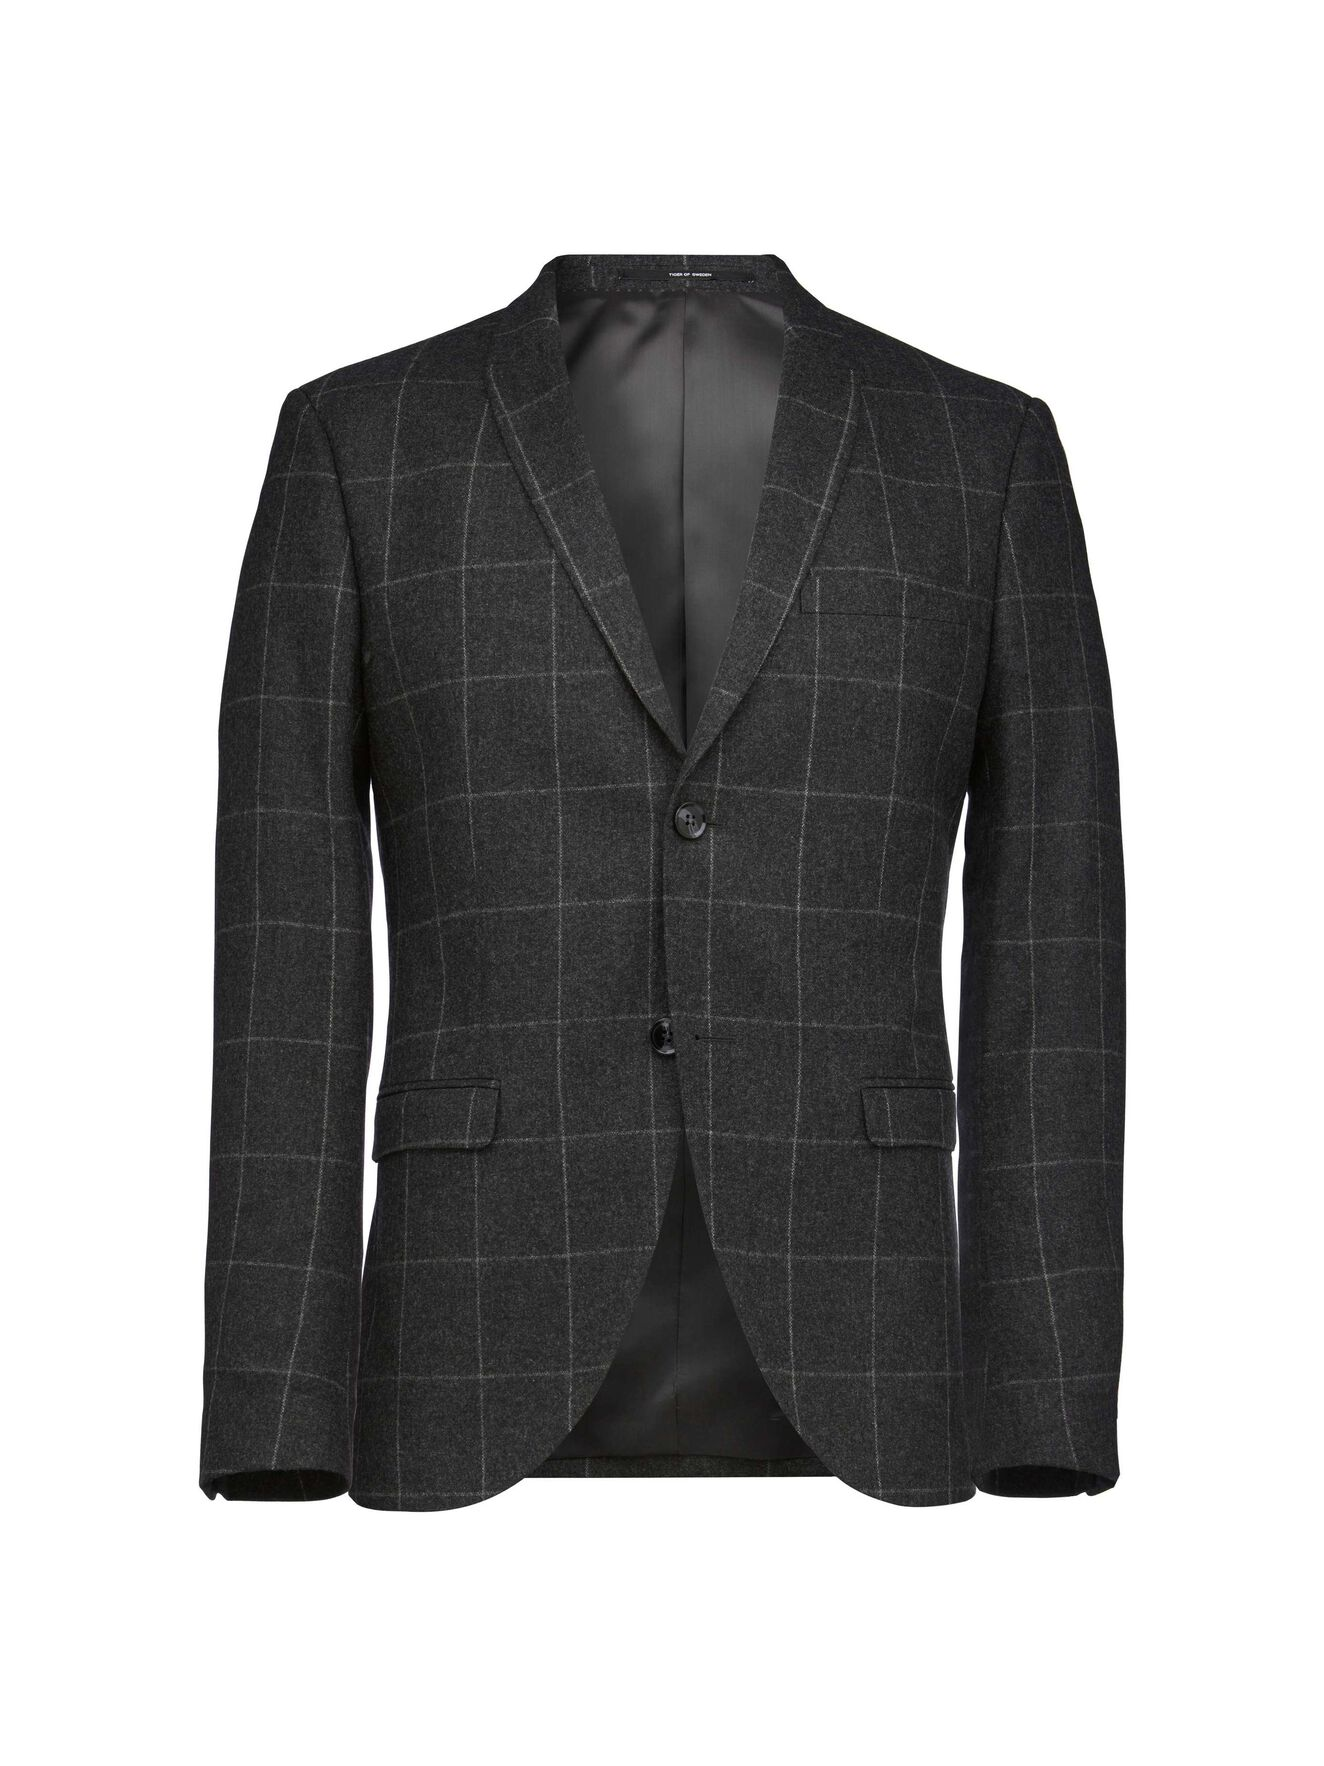 Evert blazer in Charcoal from Tiger of Sweden